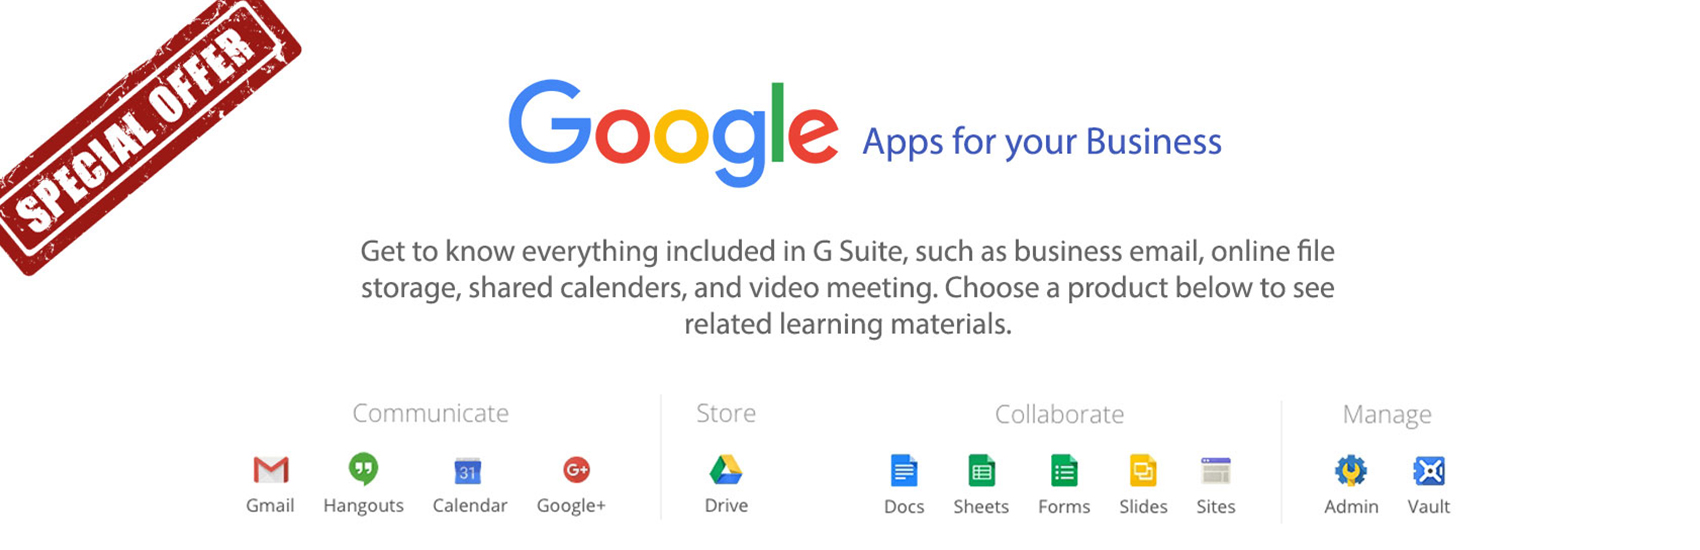 google_apps_offer